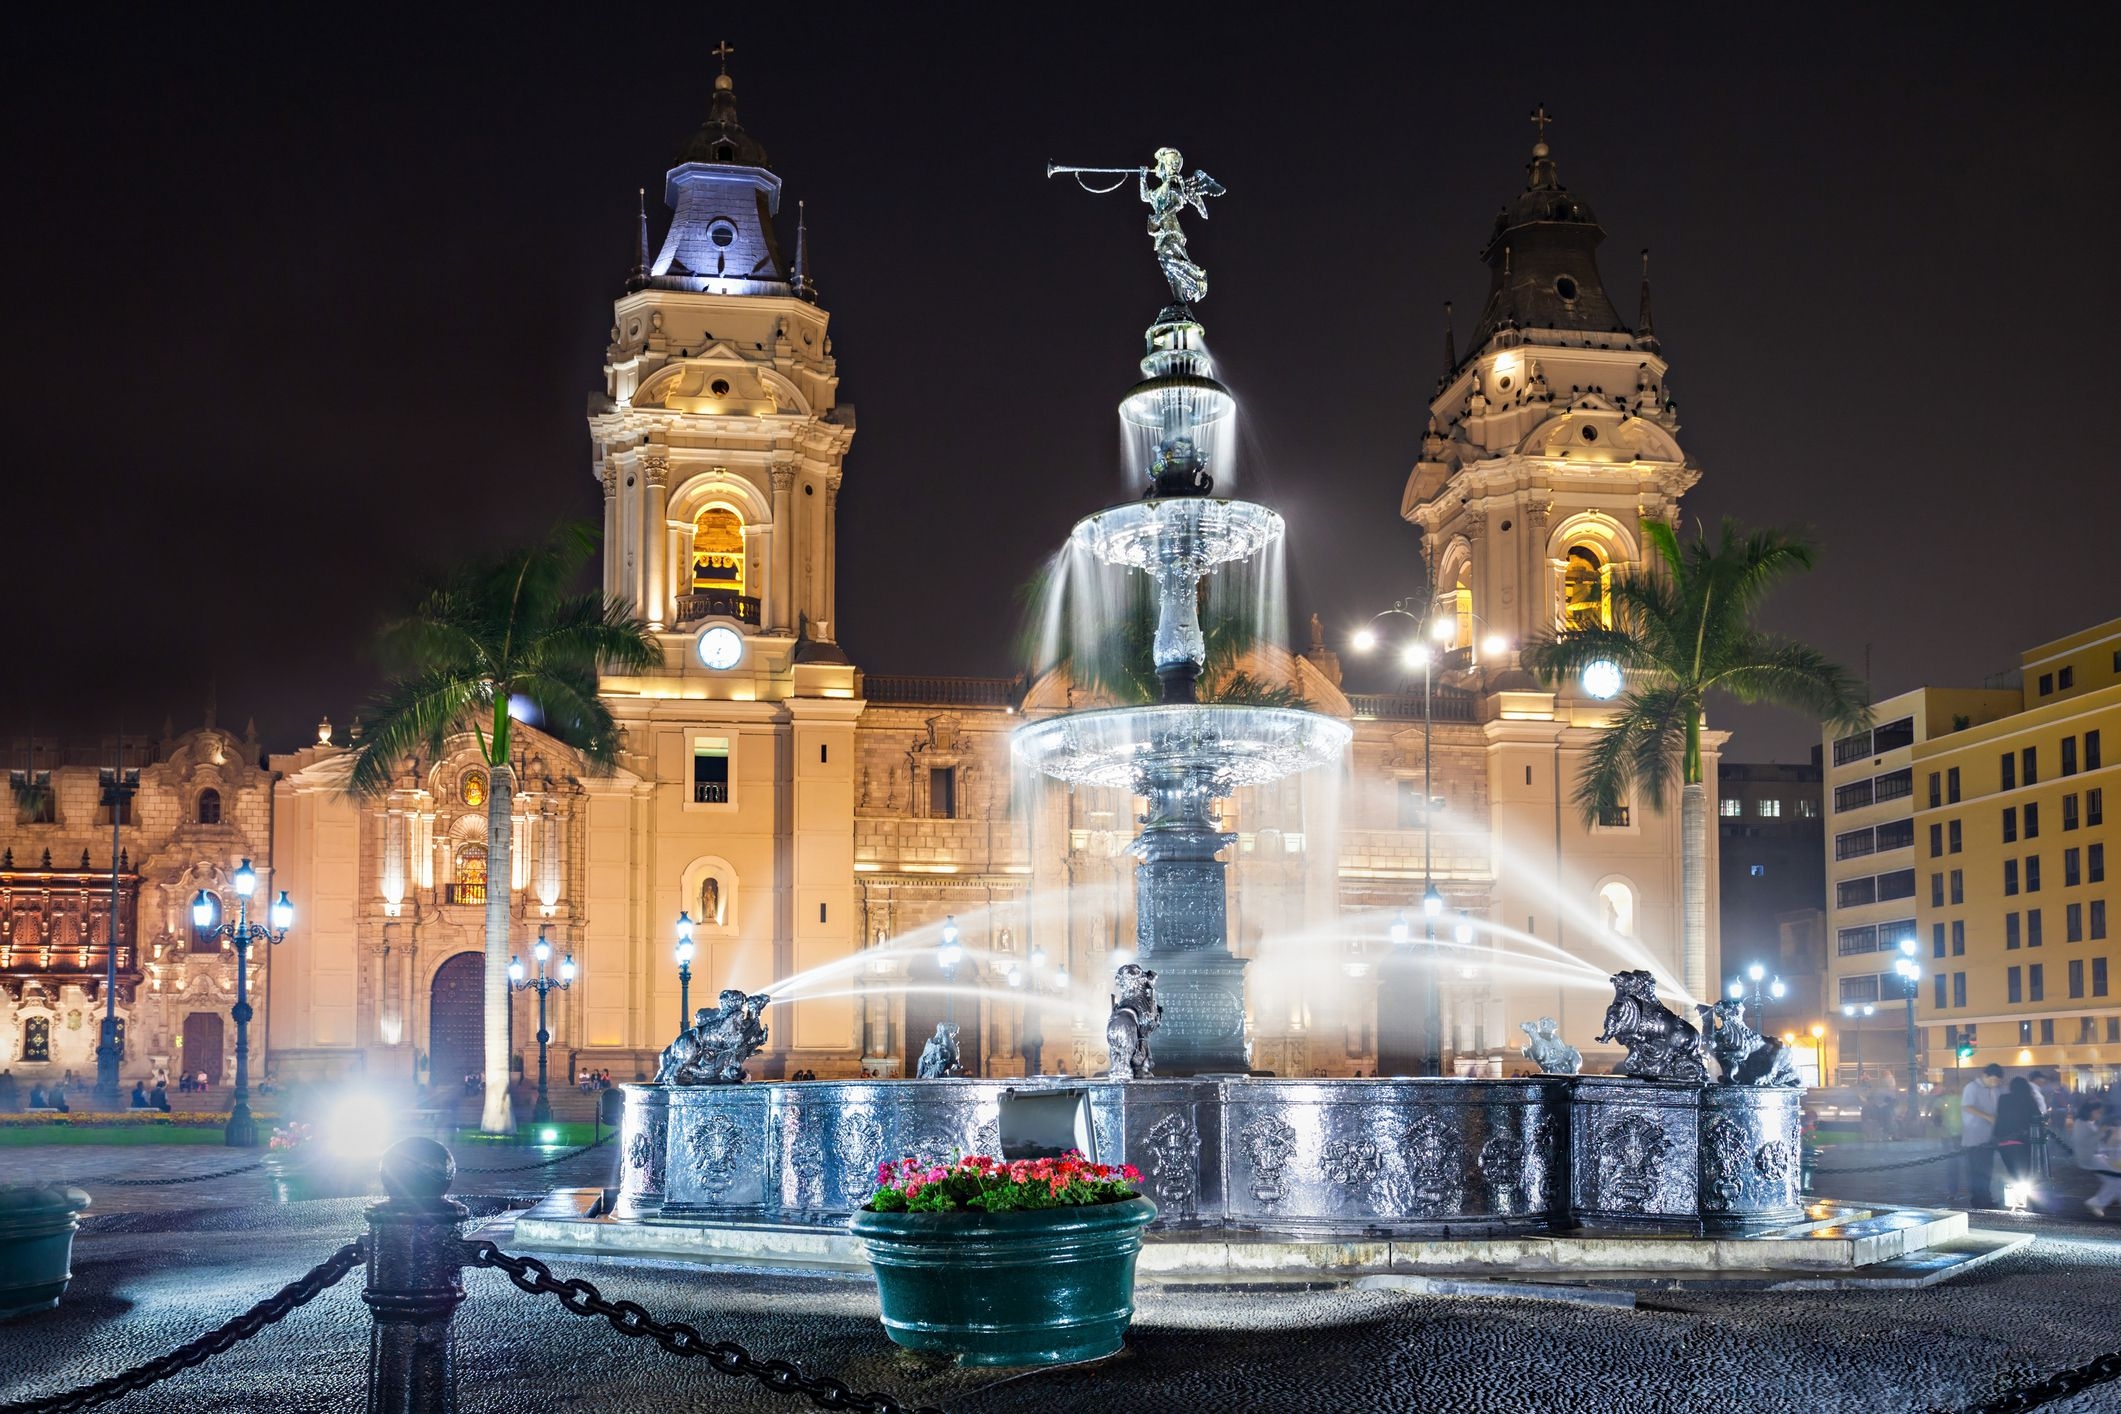 A fountain in Lima, Peru illuminated on a beautiful evening